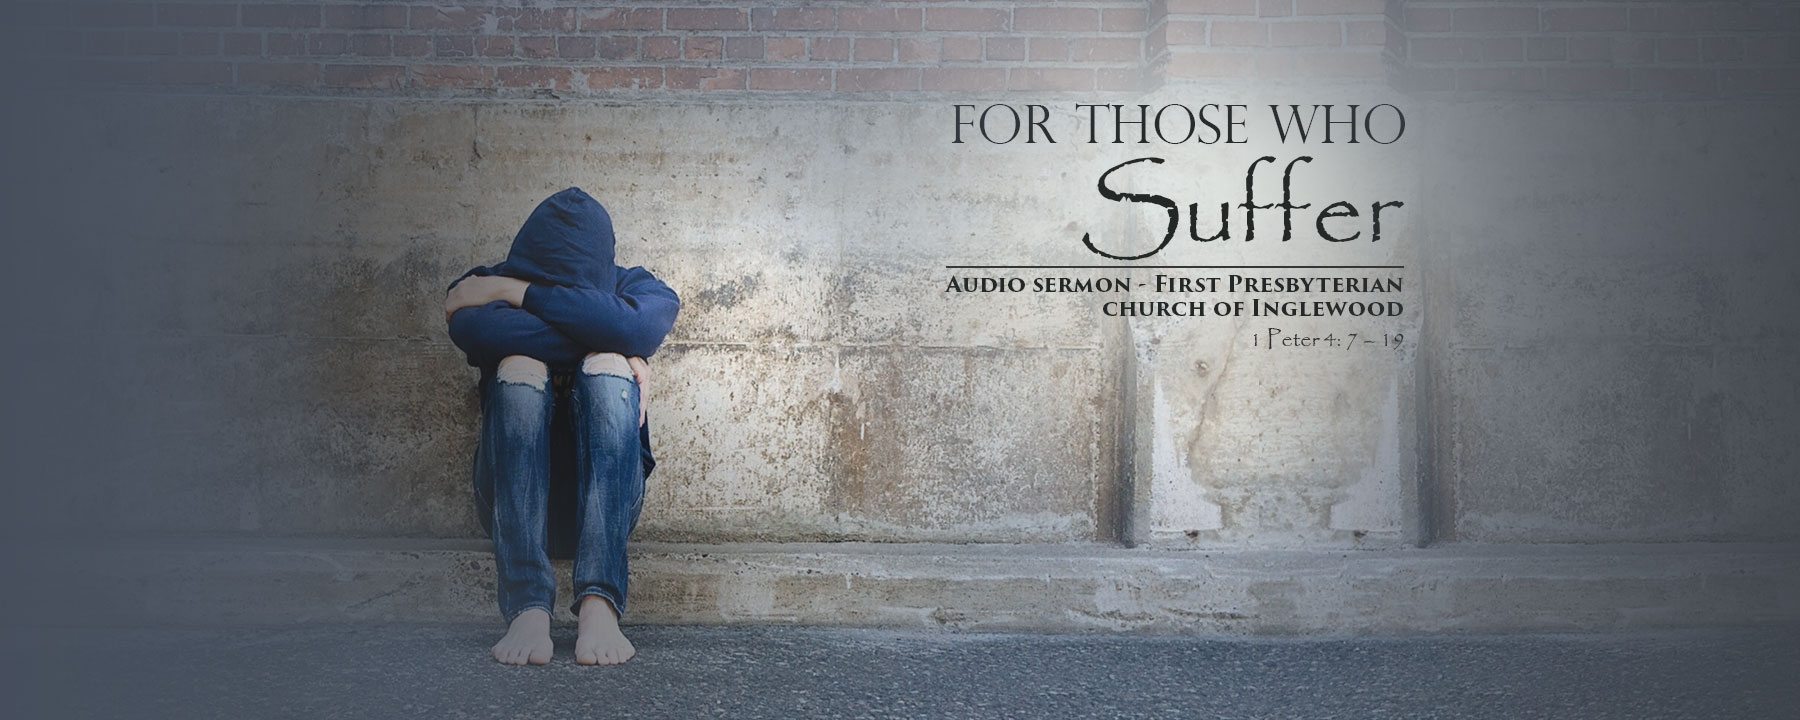 AUDIO SERMON – For Those Who Suffer - by Rev. Dr. Harold E. Kidd (1 Peter 4: 7 – 19)